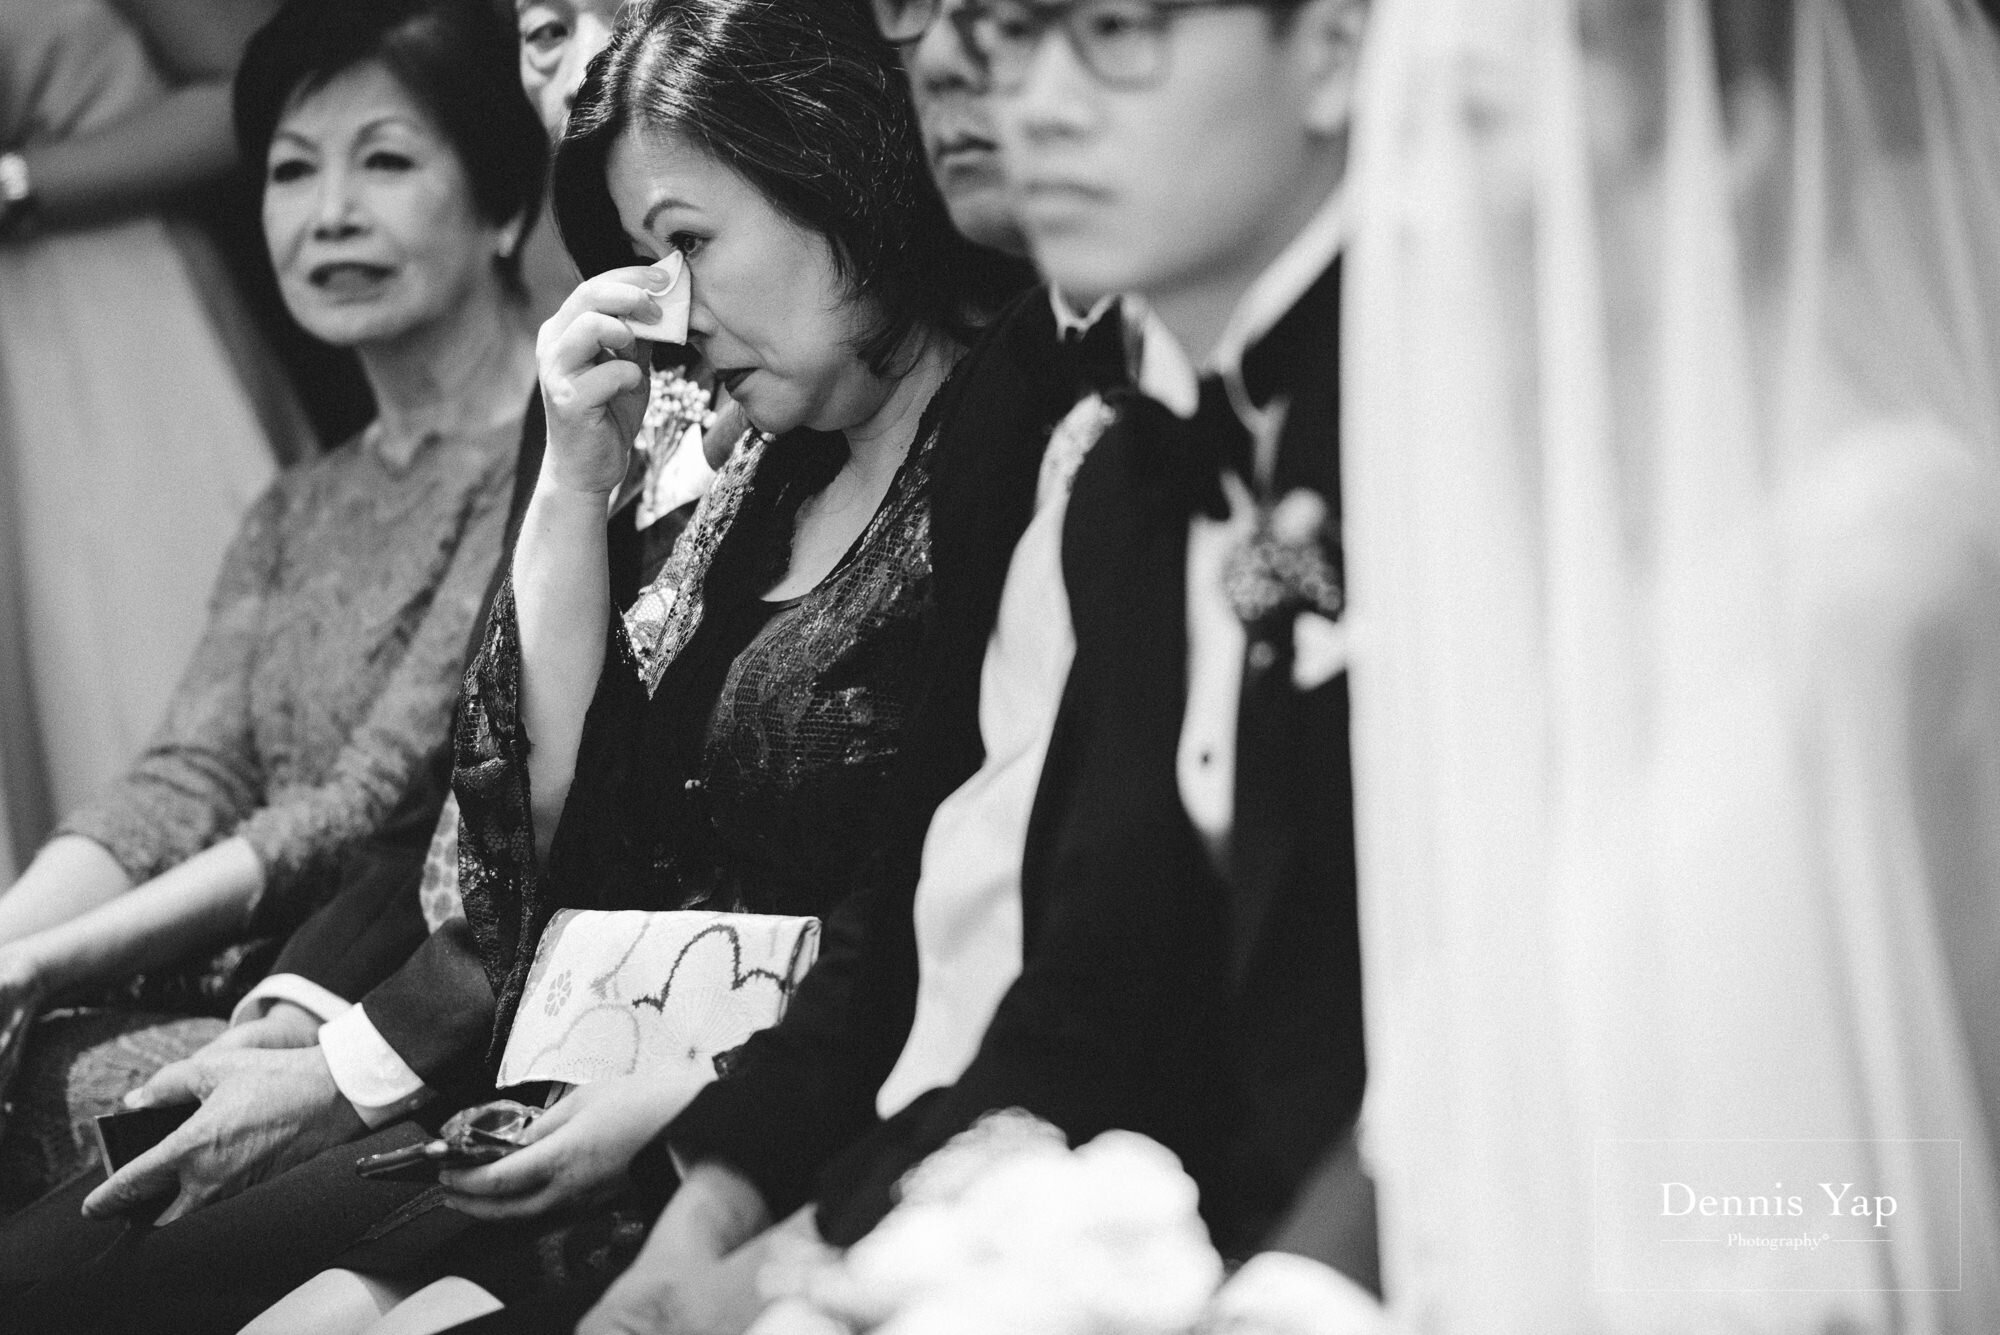 kevan khing wei wedding day hilton kuala lumpur vow exchange ceremony dennis yap photography malaysia top wedding photographer-13.jpg